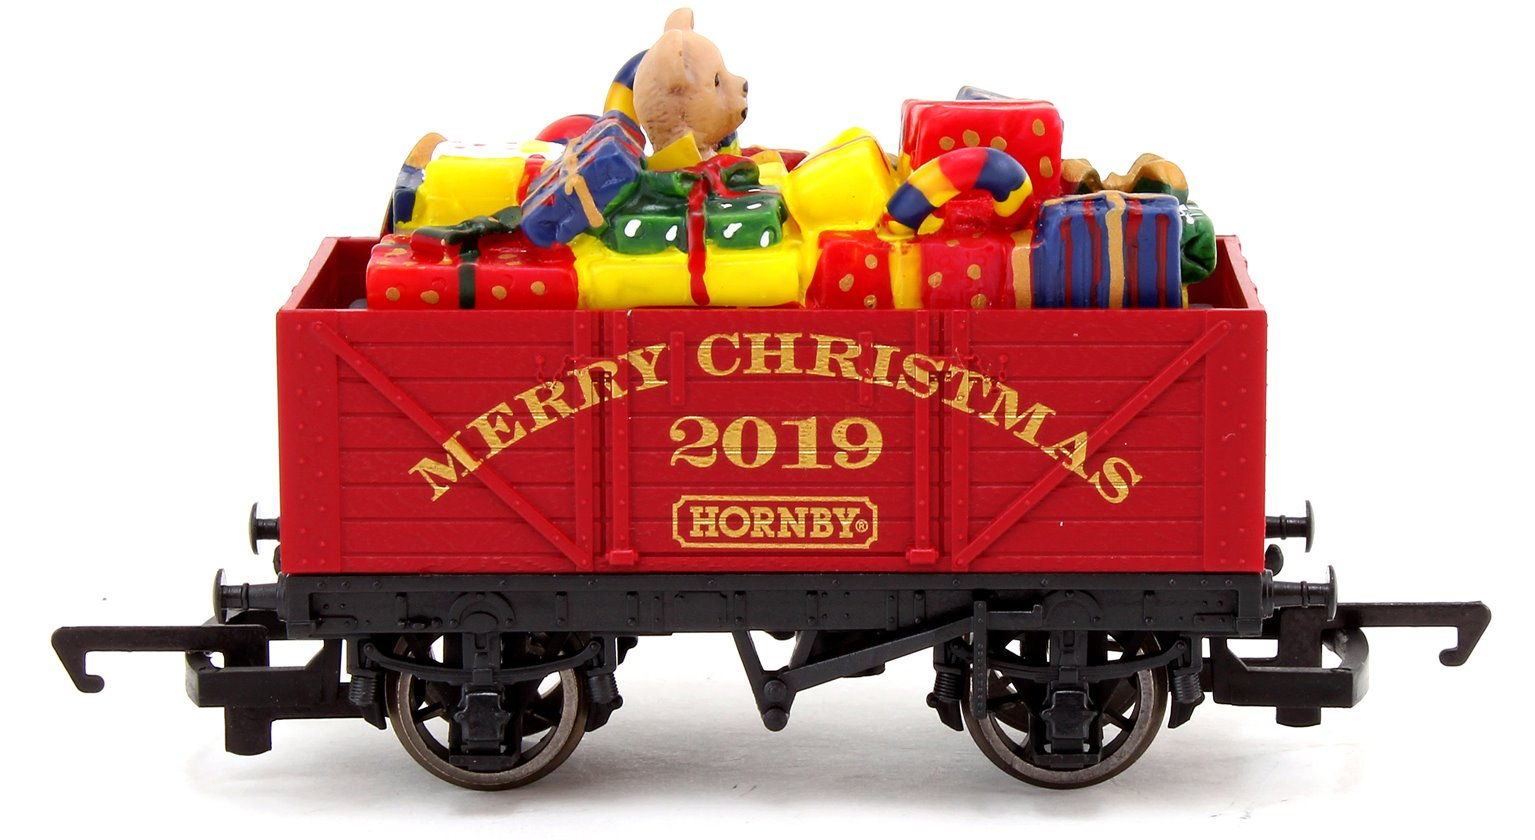 Hornby 2019 Christmas 7 Plank Wagon with toy load